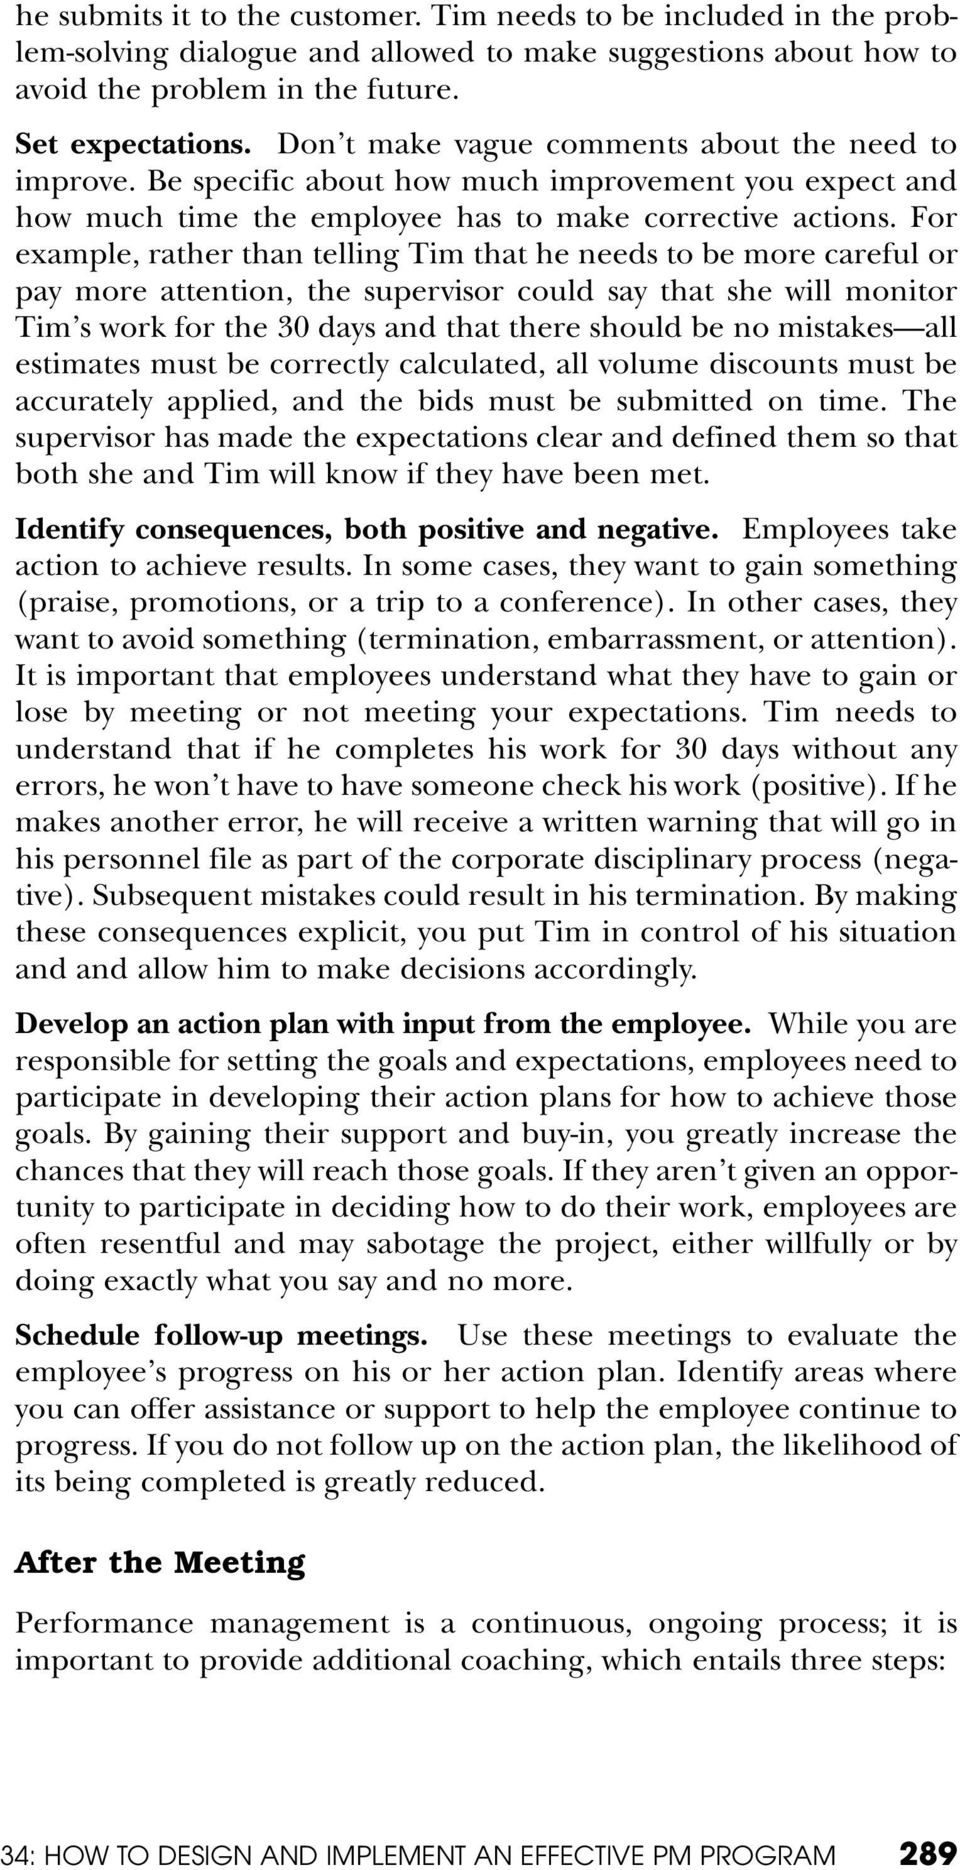 For example, rather than telling Tim that he needs to be more careful or pay more attention, the supervisor could say that she will monitor Tim s work for the 30 days and that there should be no